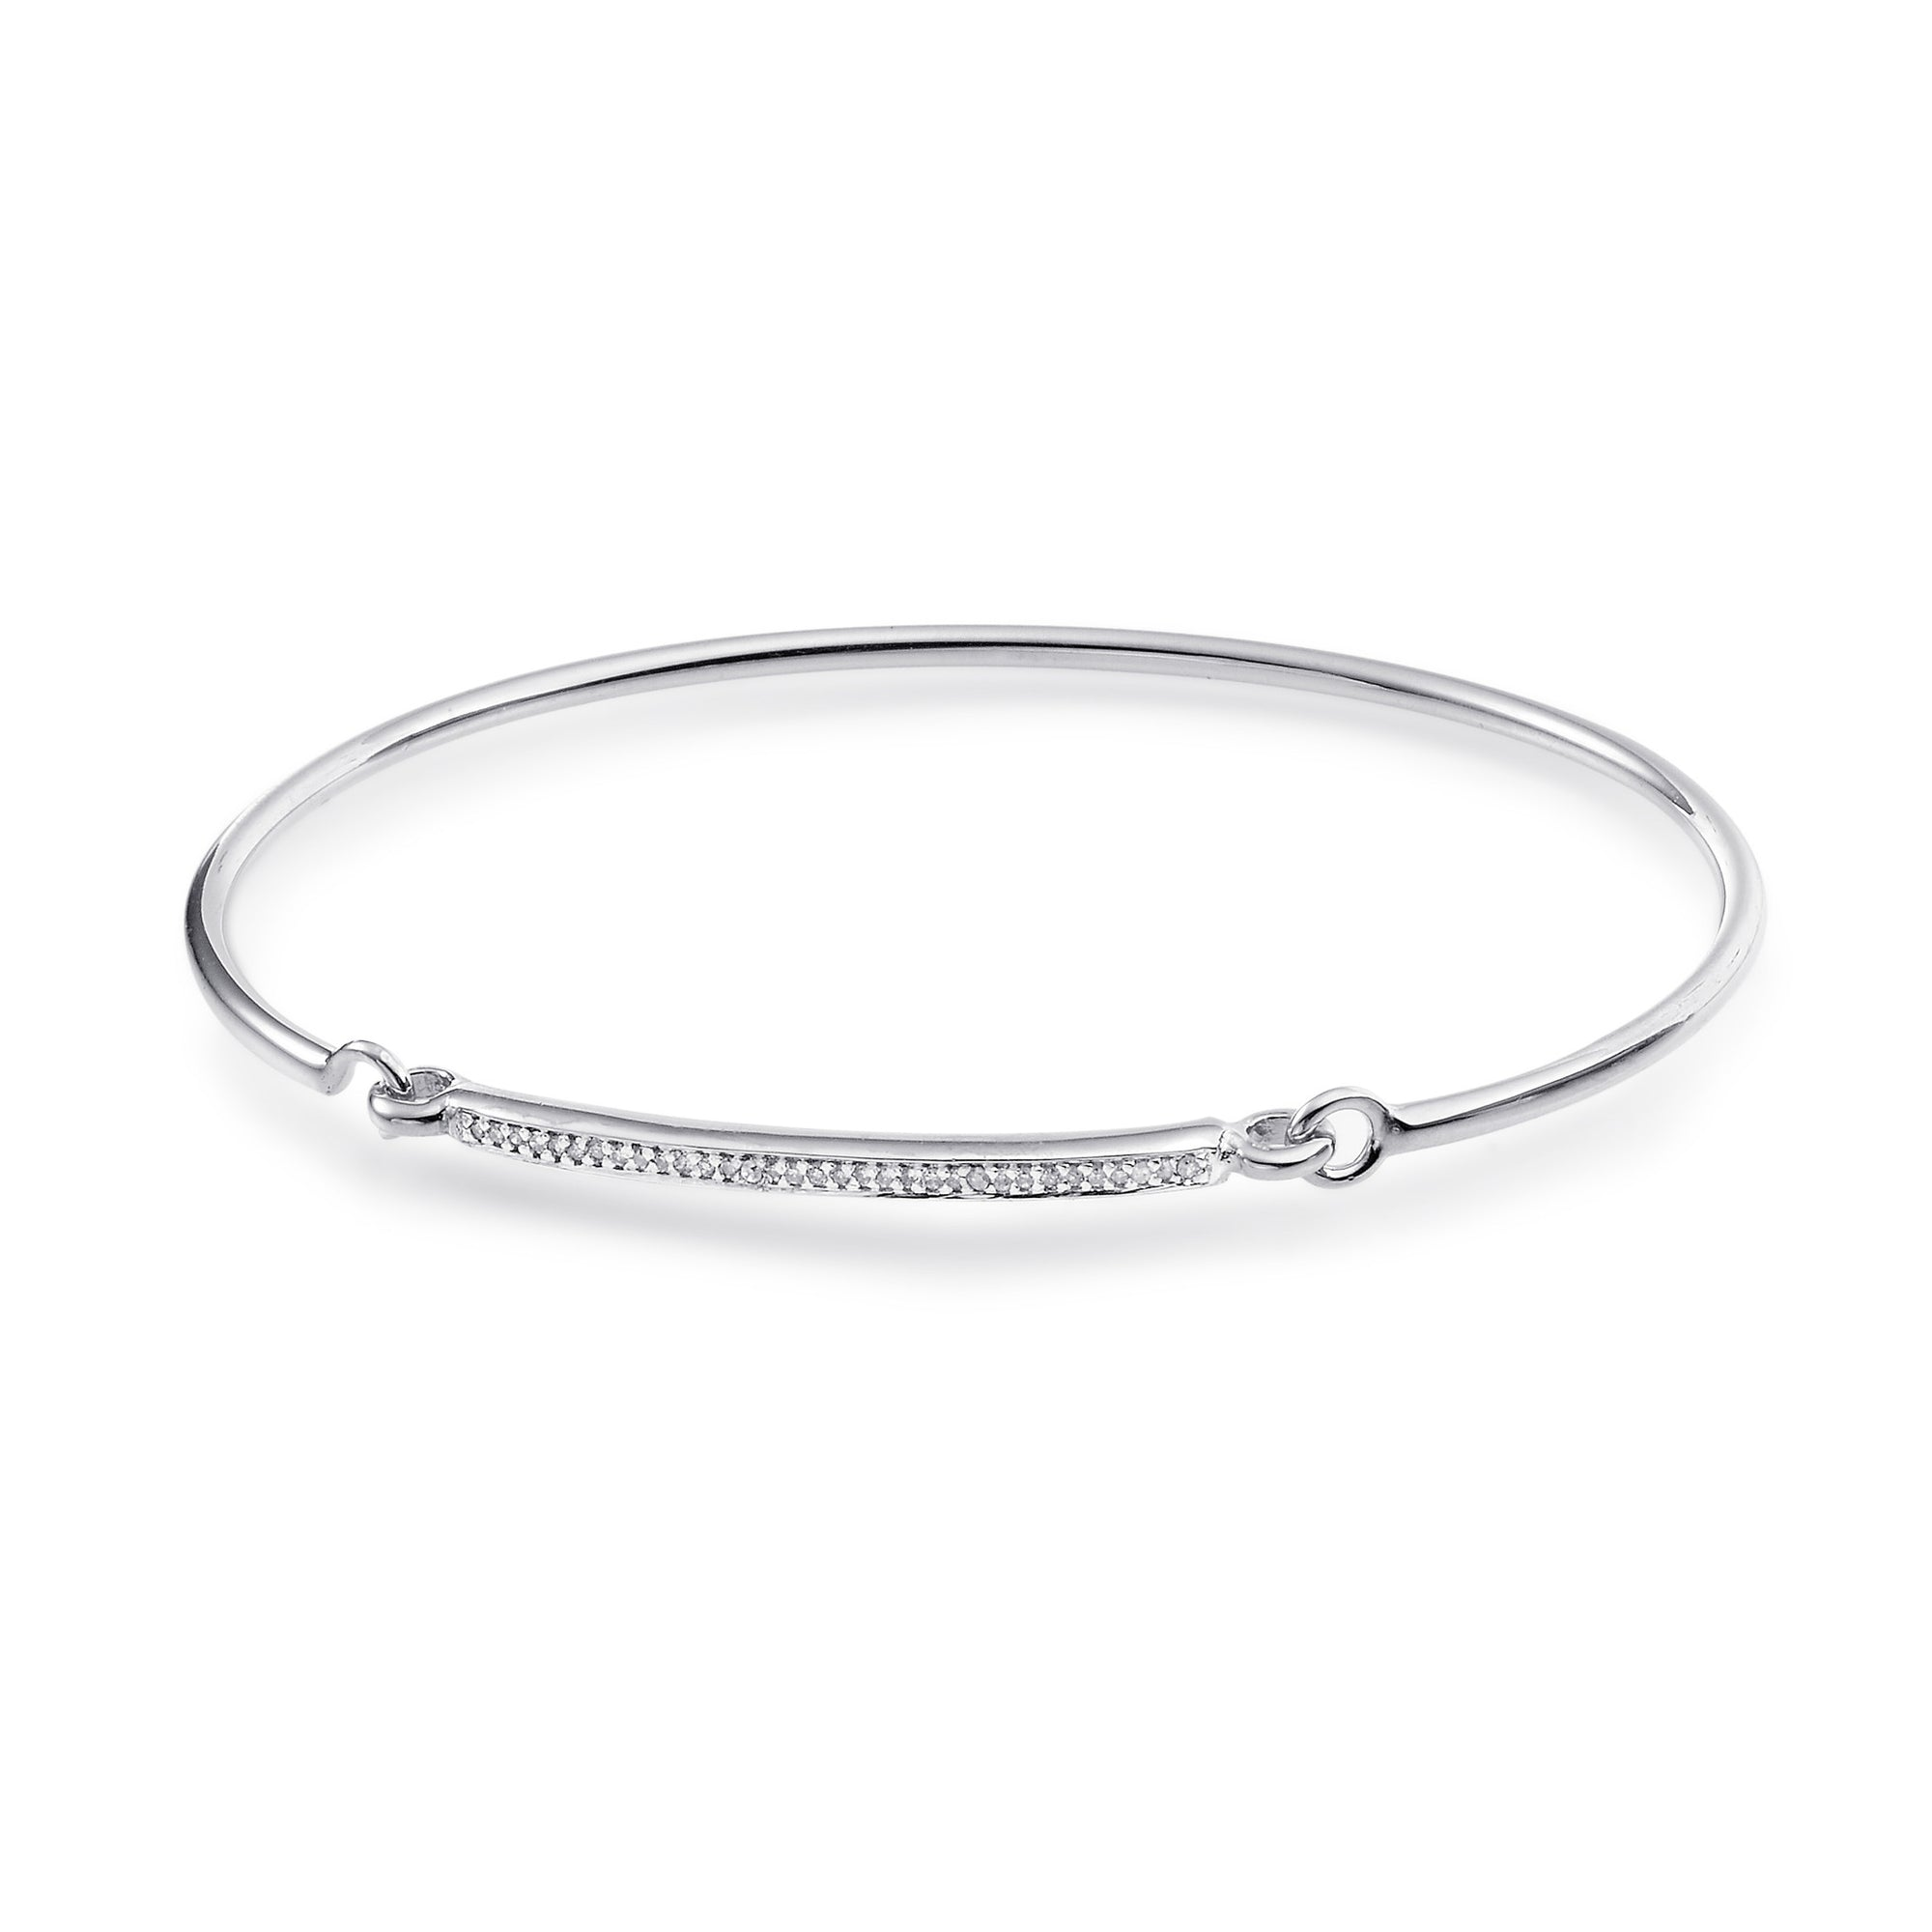 lynn loading jewelry sterling large silver moda by bangle diamond operandi close ban bangles